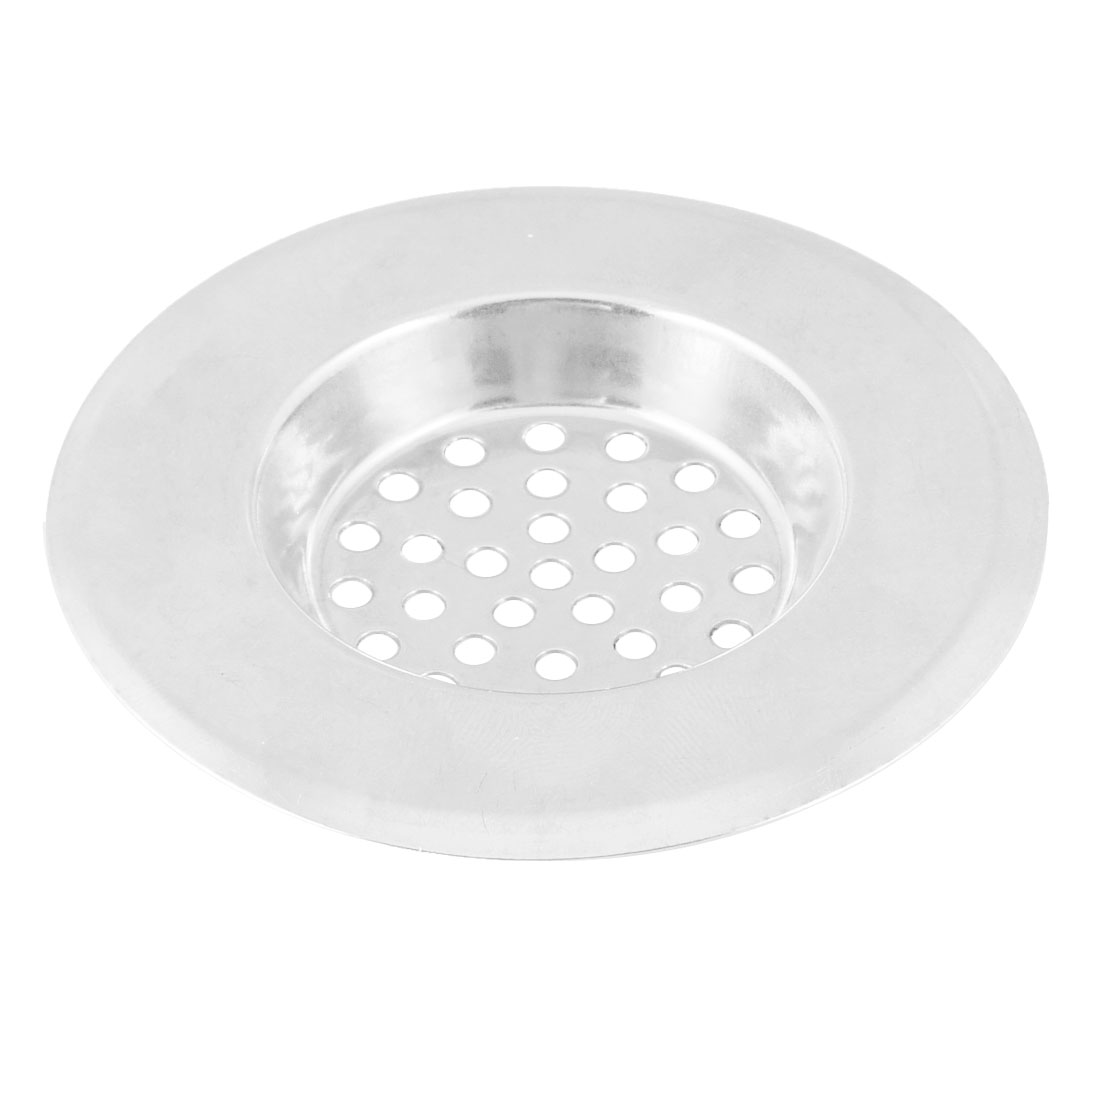 "Home Kitchen Silver Tone Stainless Steel Water Sink Drainer Strainer 2.9"" Dia"